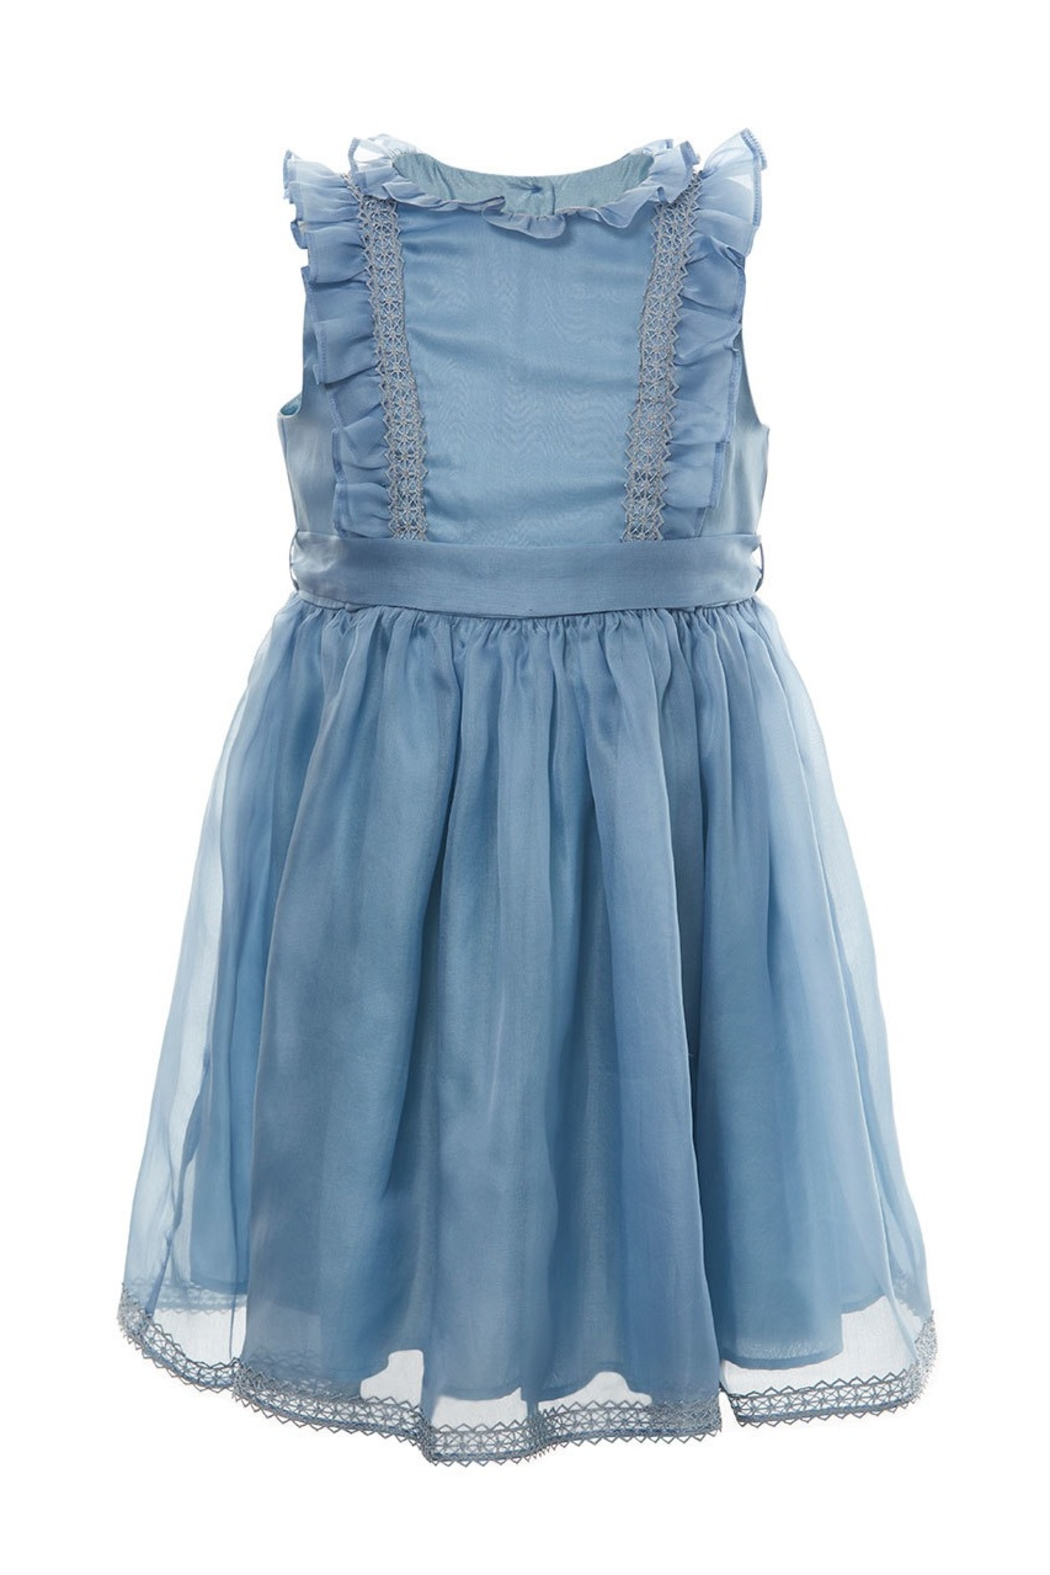 Marie Chantal Blue Organza Silk Dress - Main Image